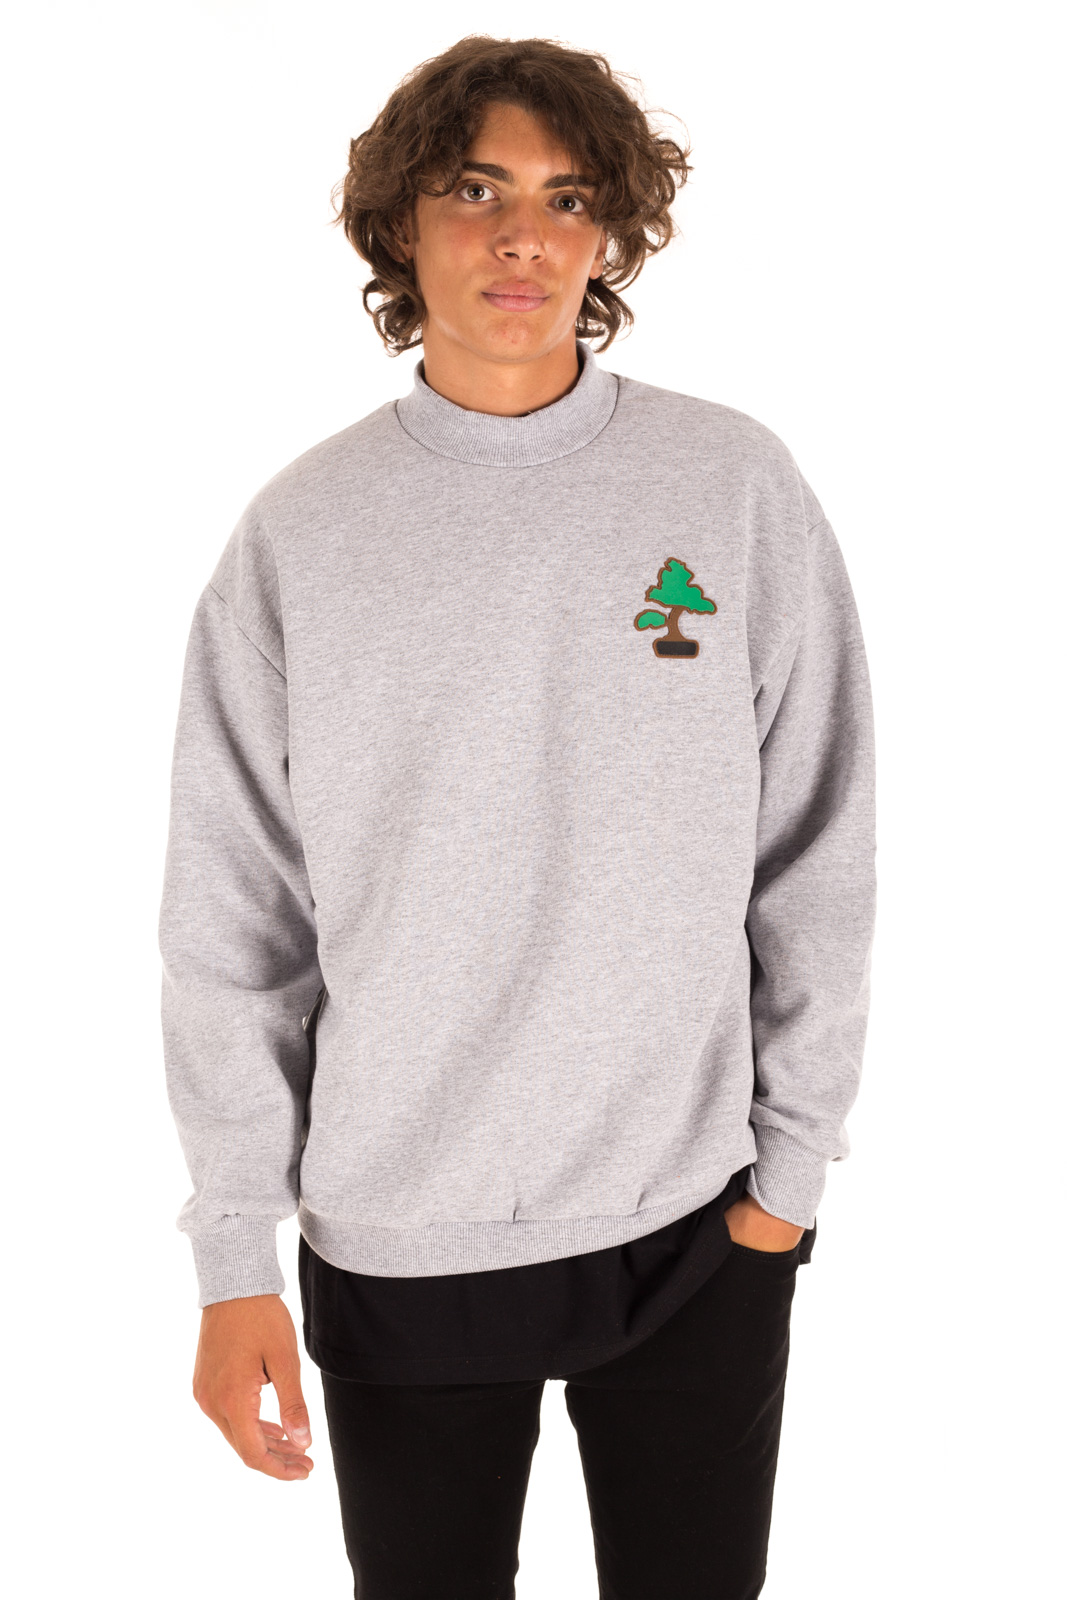 Bonsai - Tree Rubber Sweater